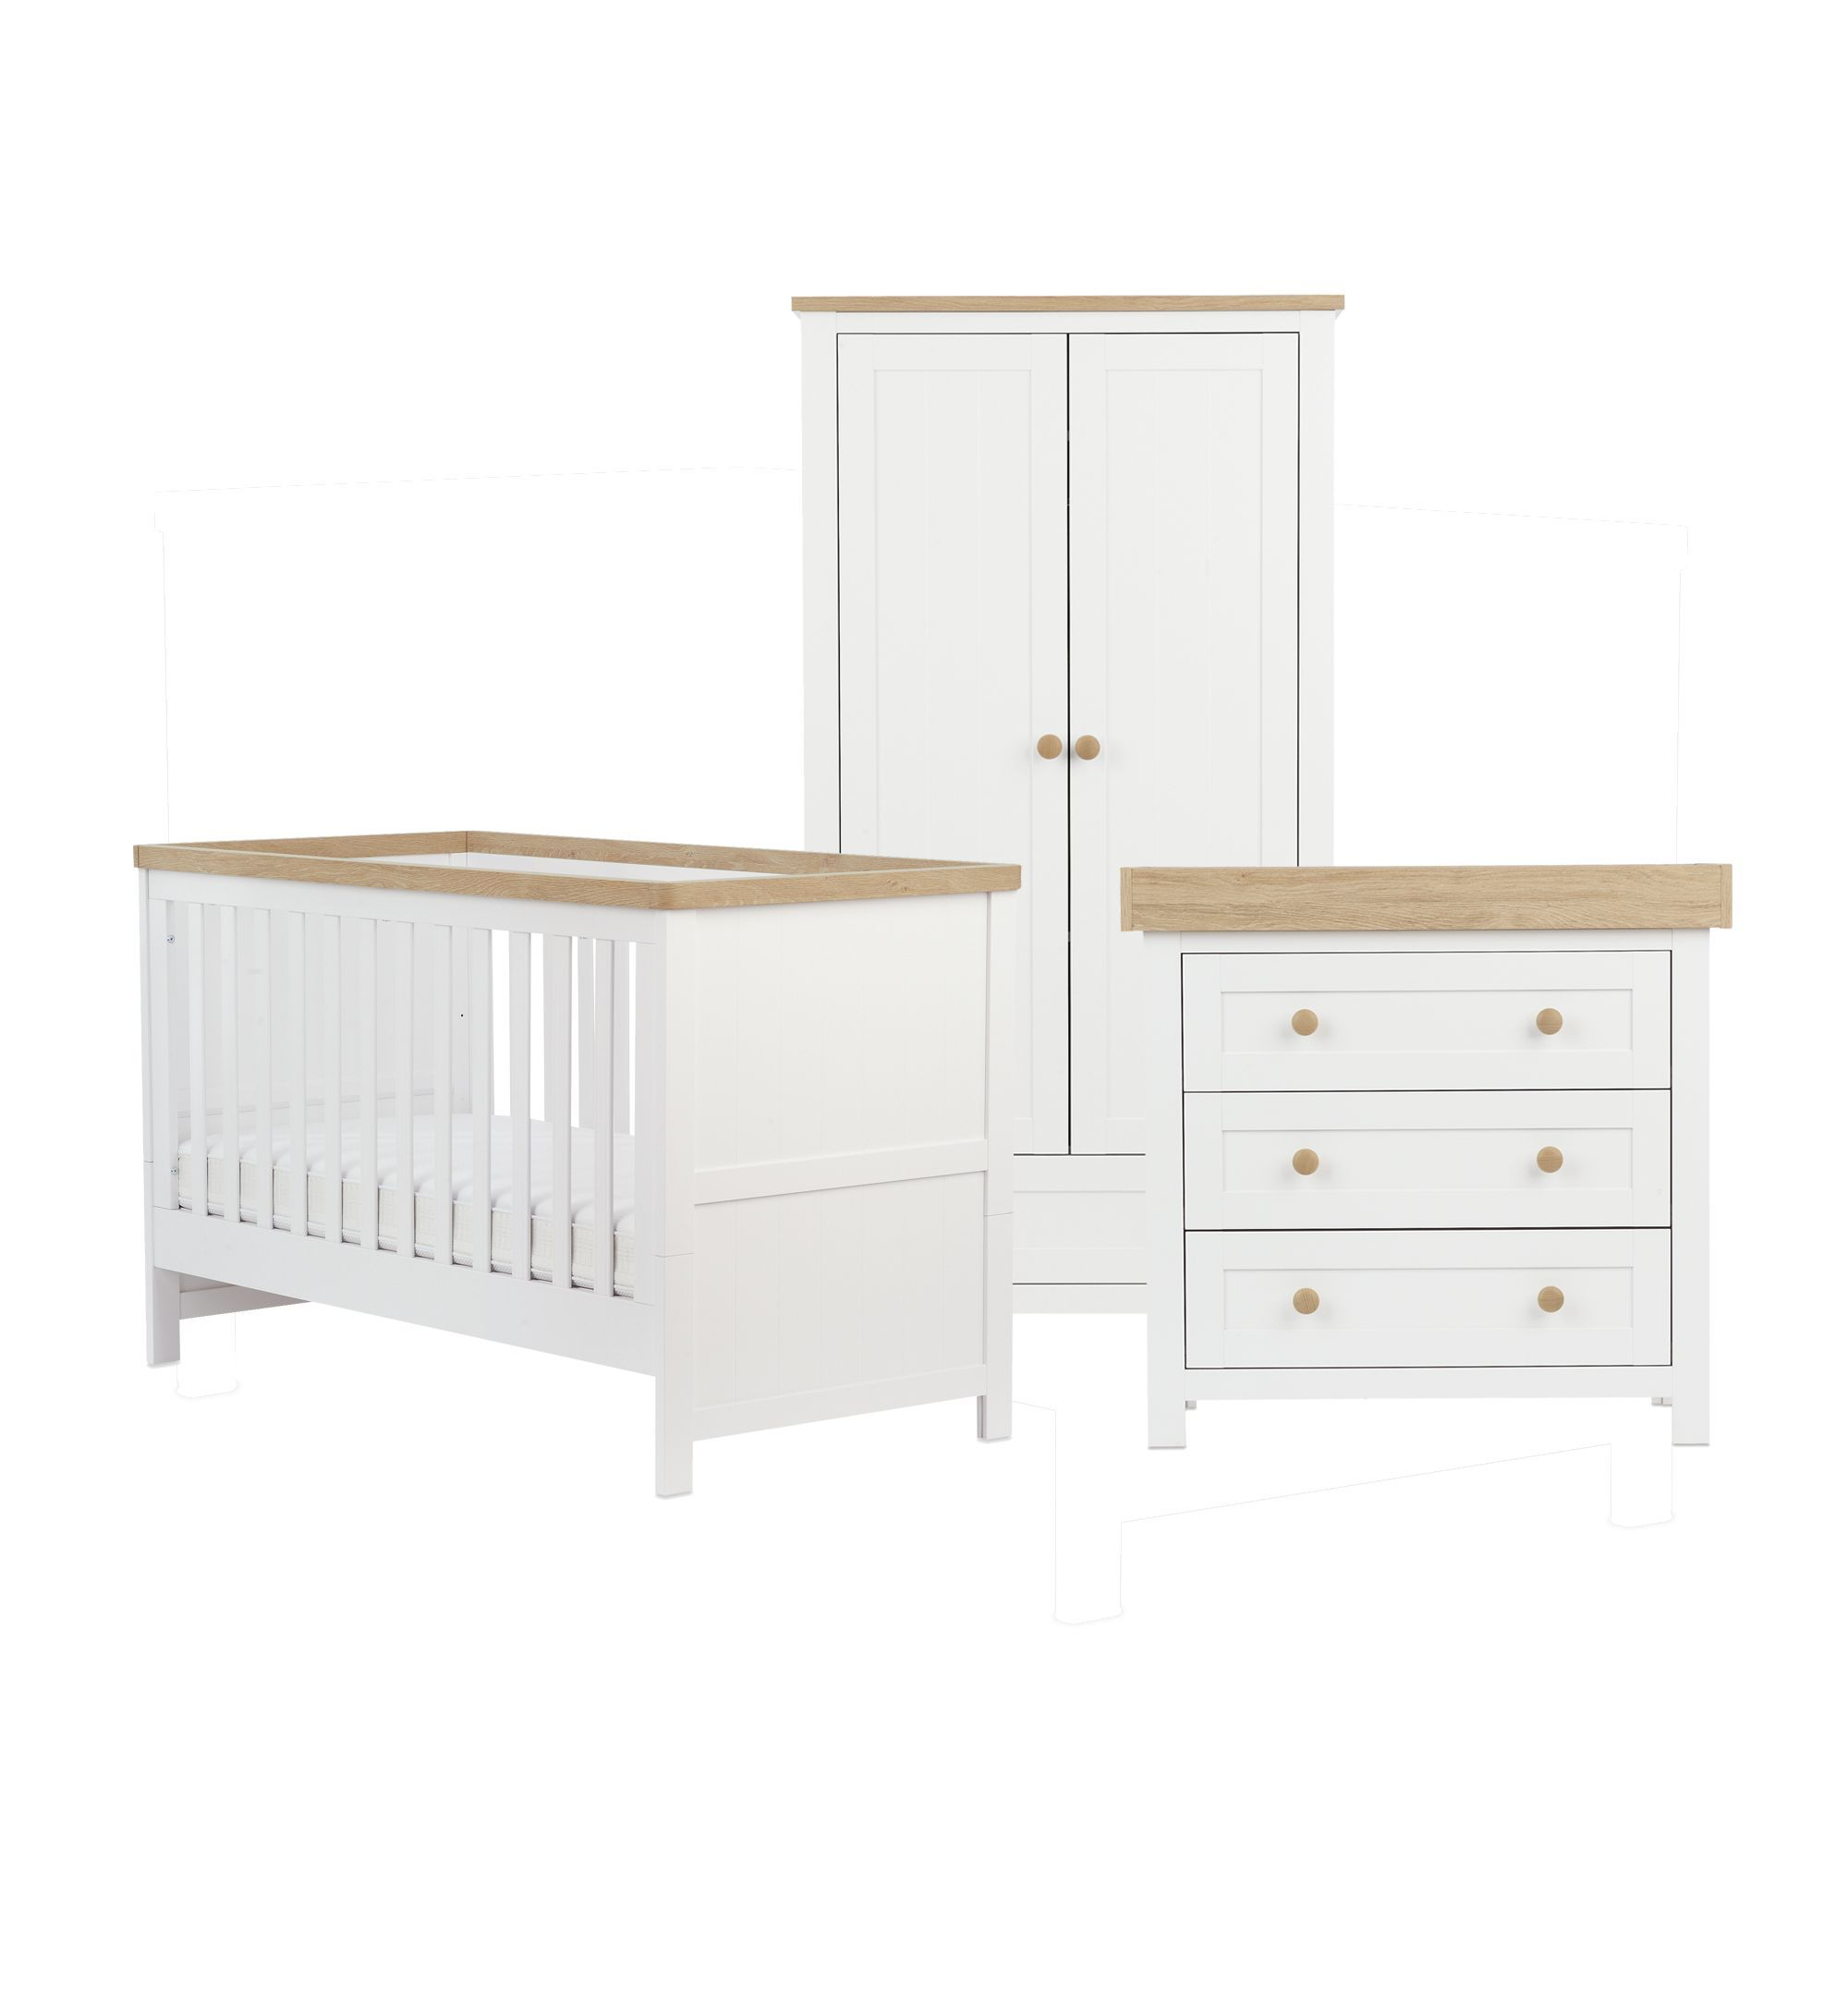 Mothercare Lulworth 3 Piece Nursery Furniture Set White Nursery Furniture Sets White Nursery Furniture Sets Baby Furniture Sets